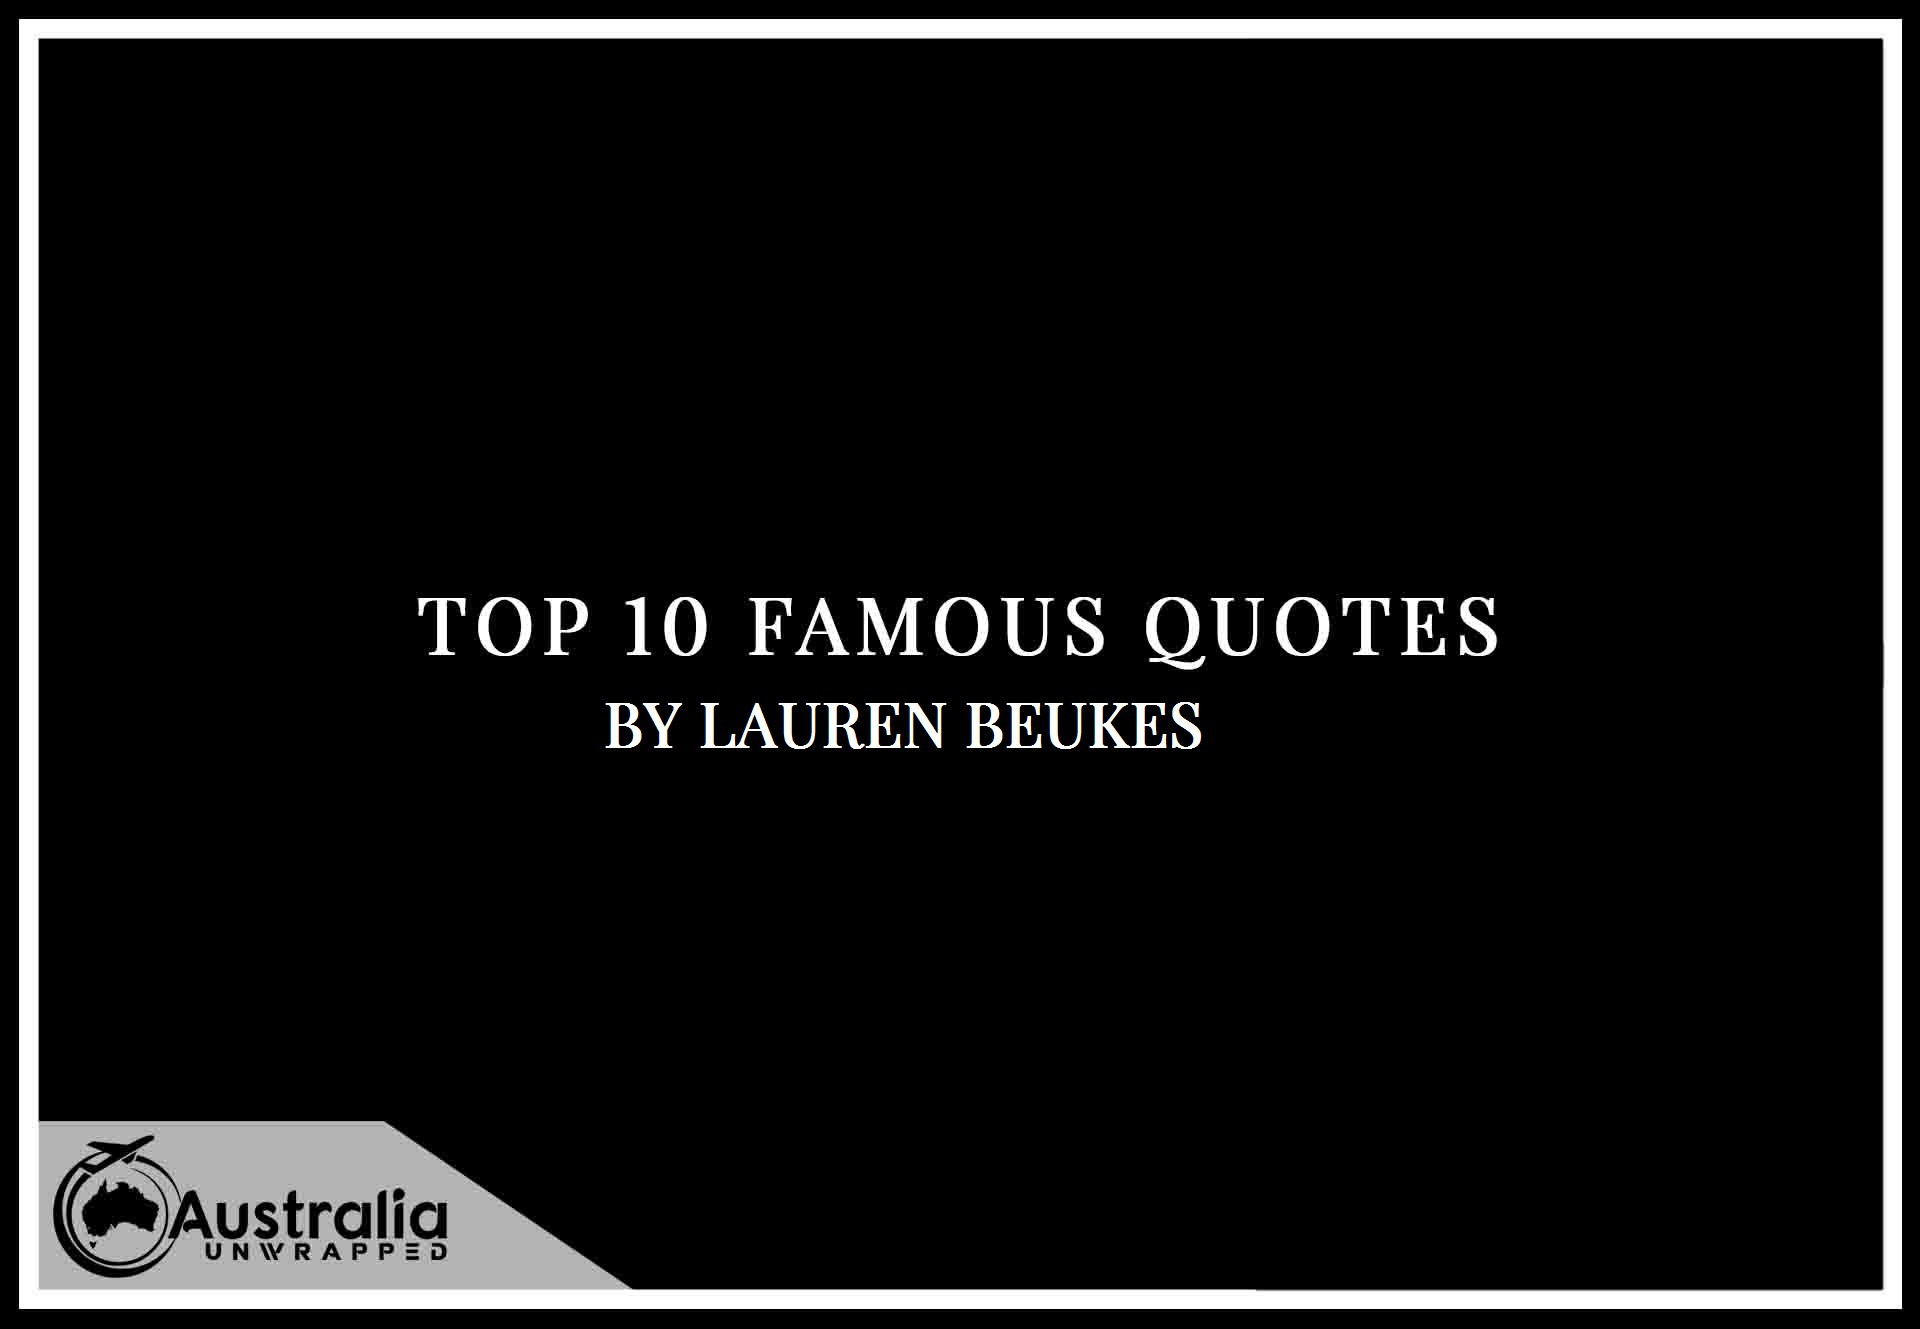 Lauren Beukes's Top 10 Popular and Famous Quotes